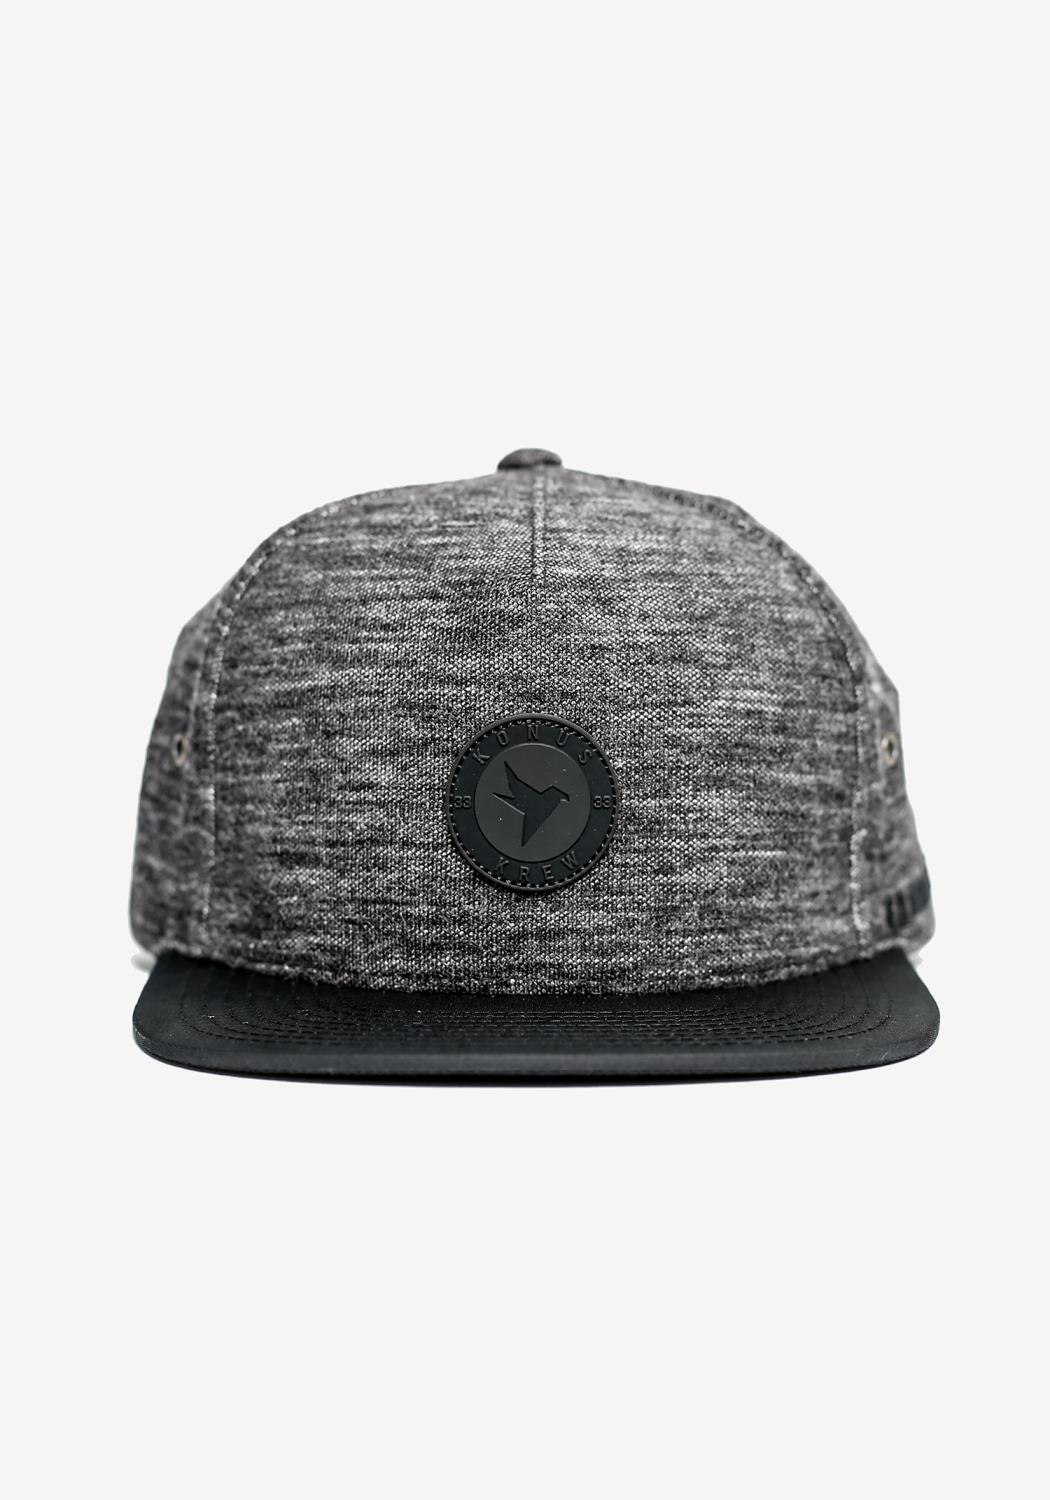 5 Panel Hat with Adjustable Strap